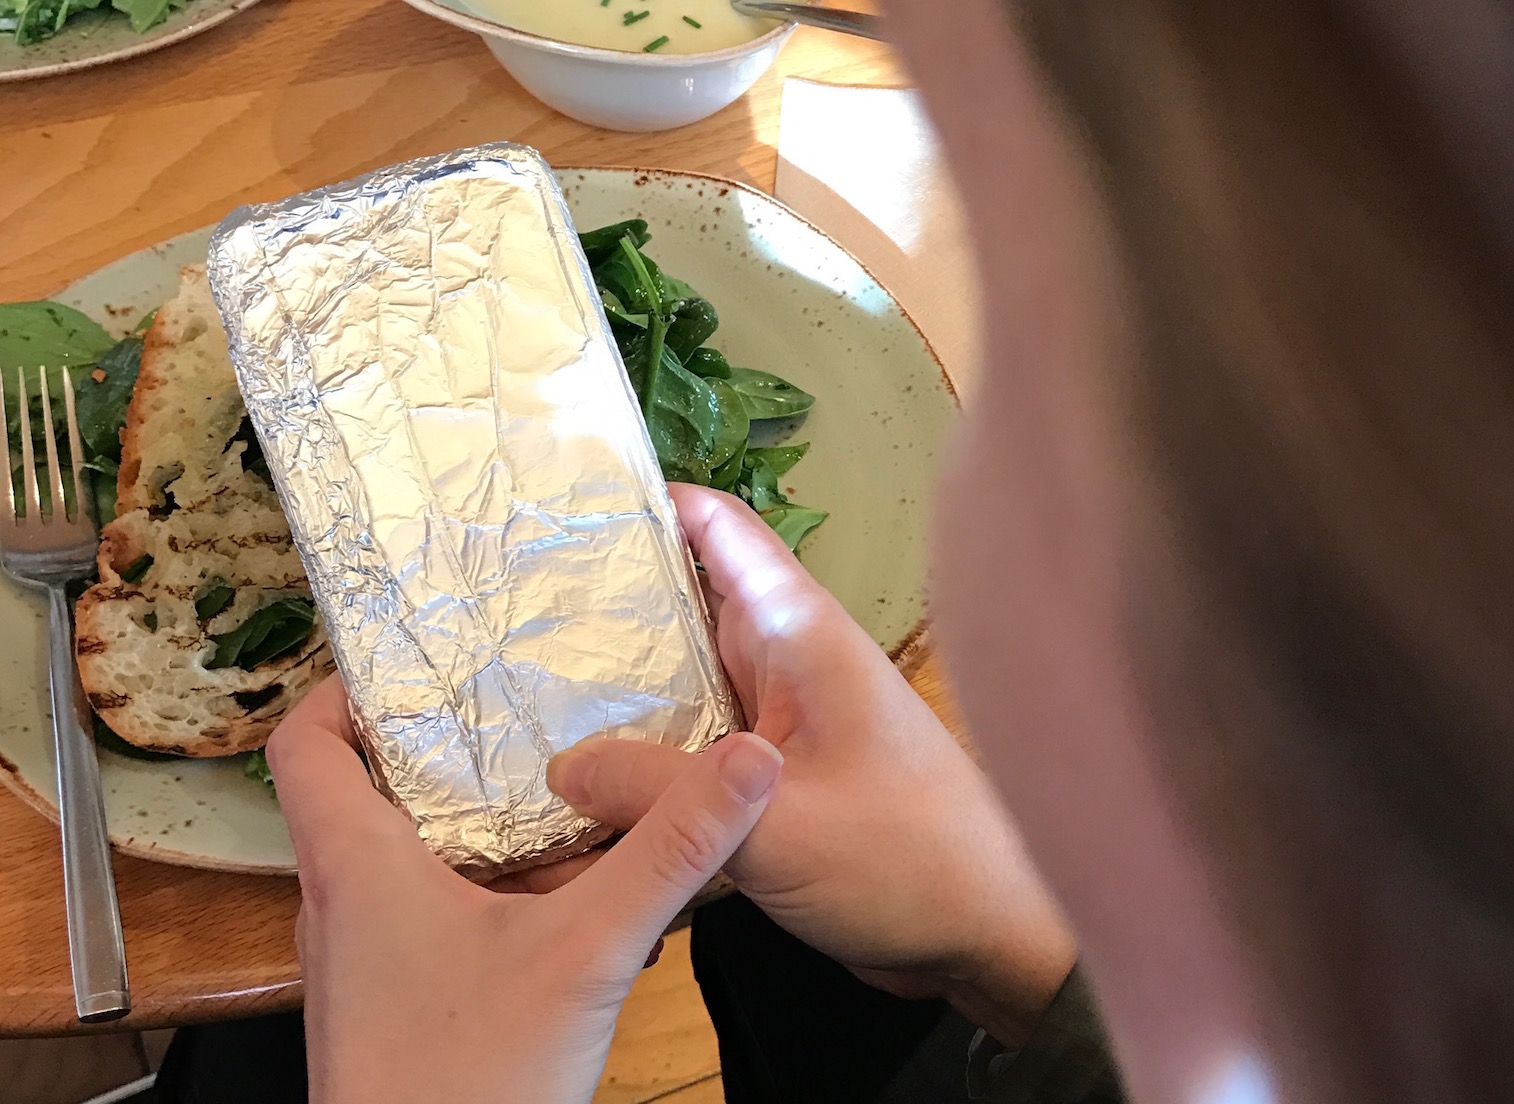 camera being held to take picture of food at a restaurant, but the phone is wrapped in tinfoil